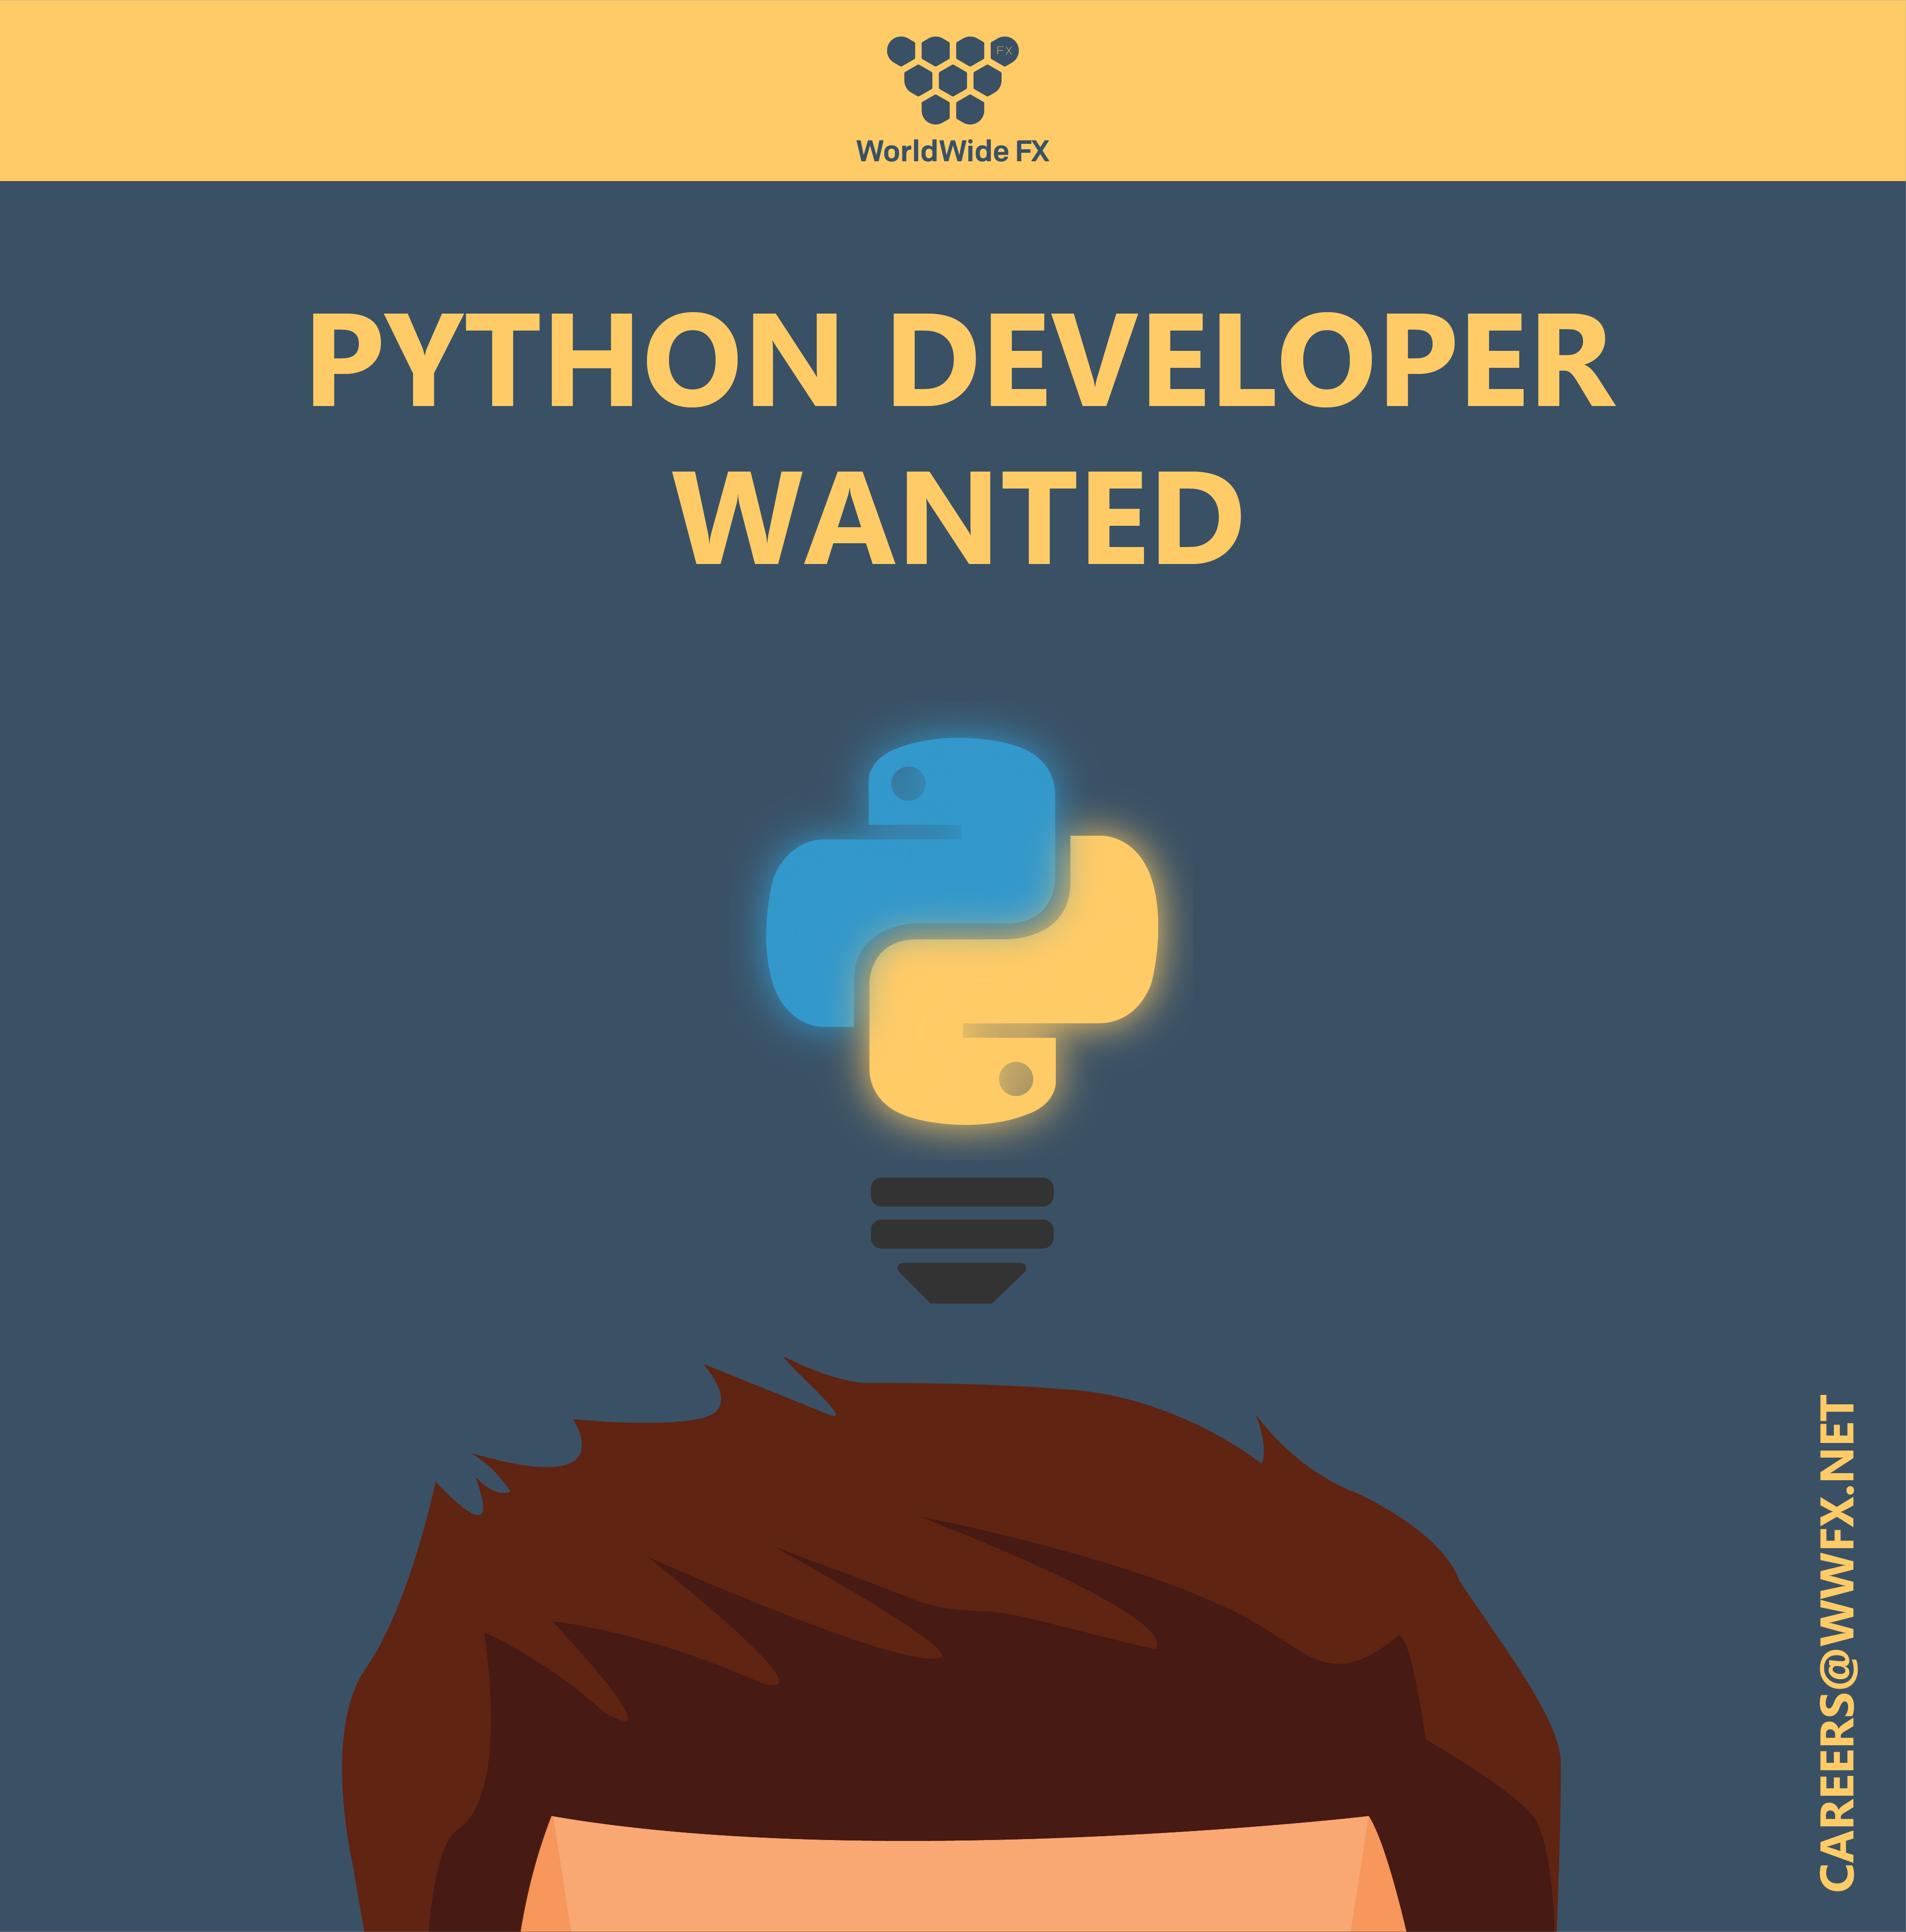 We're Looking for Pipeline Developers!